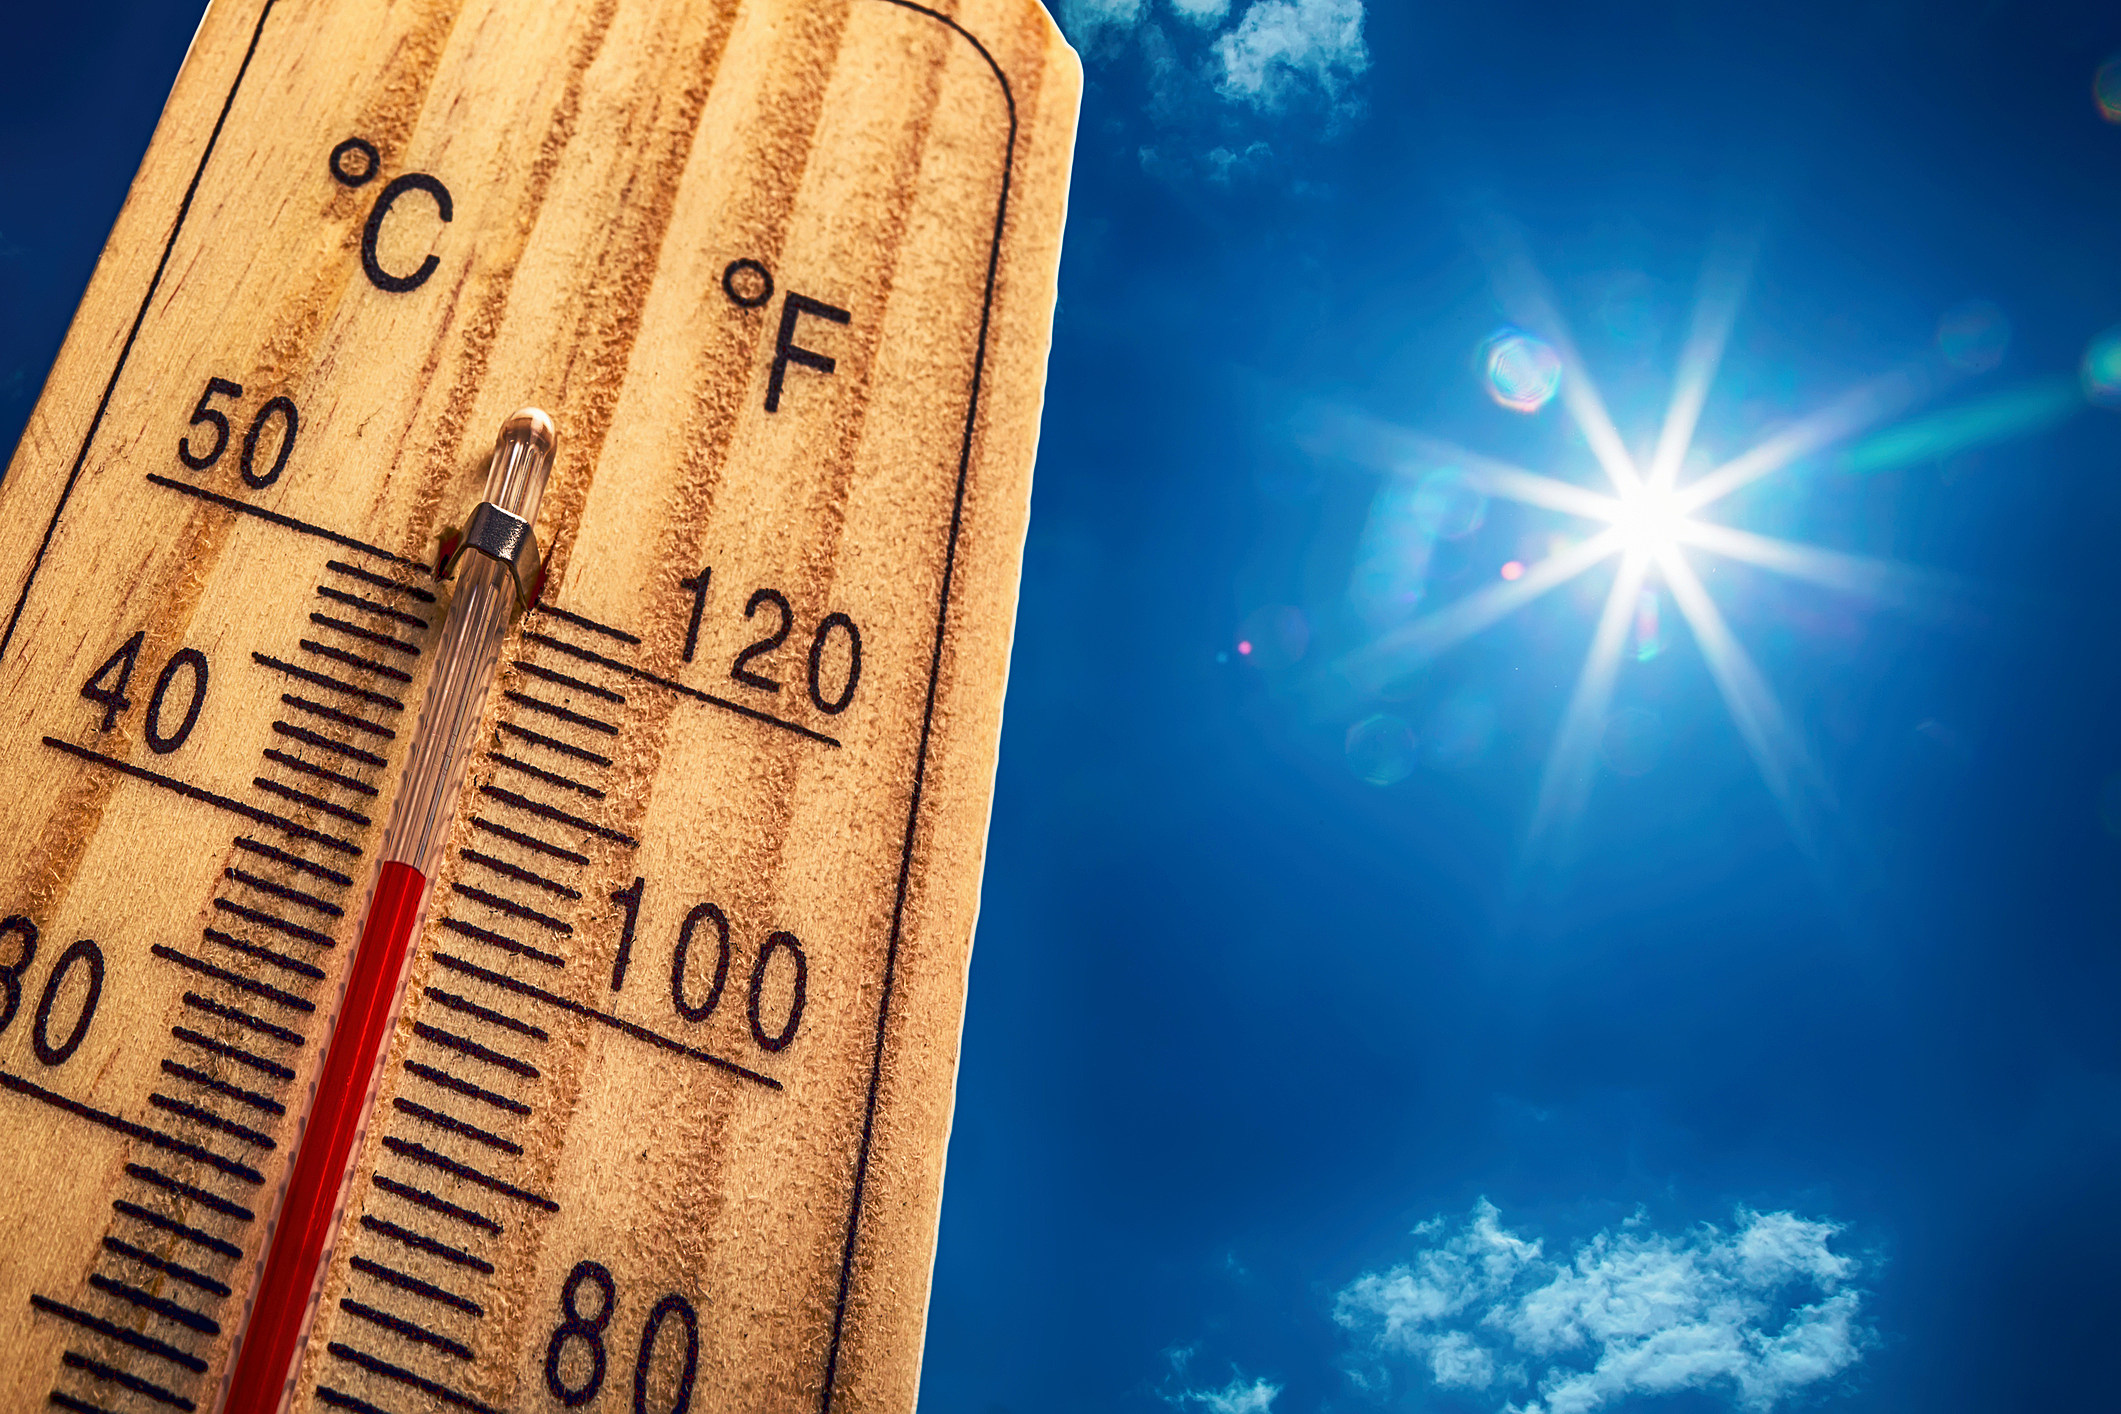 Thermometer Sun 40 Degres. Hot summer day. High Summer temperatures